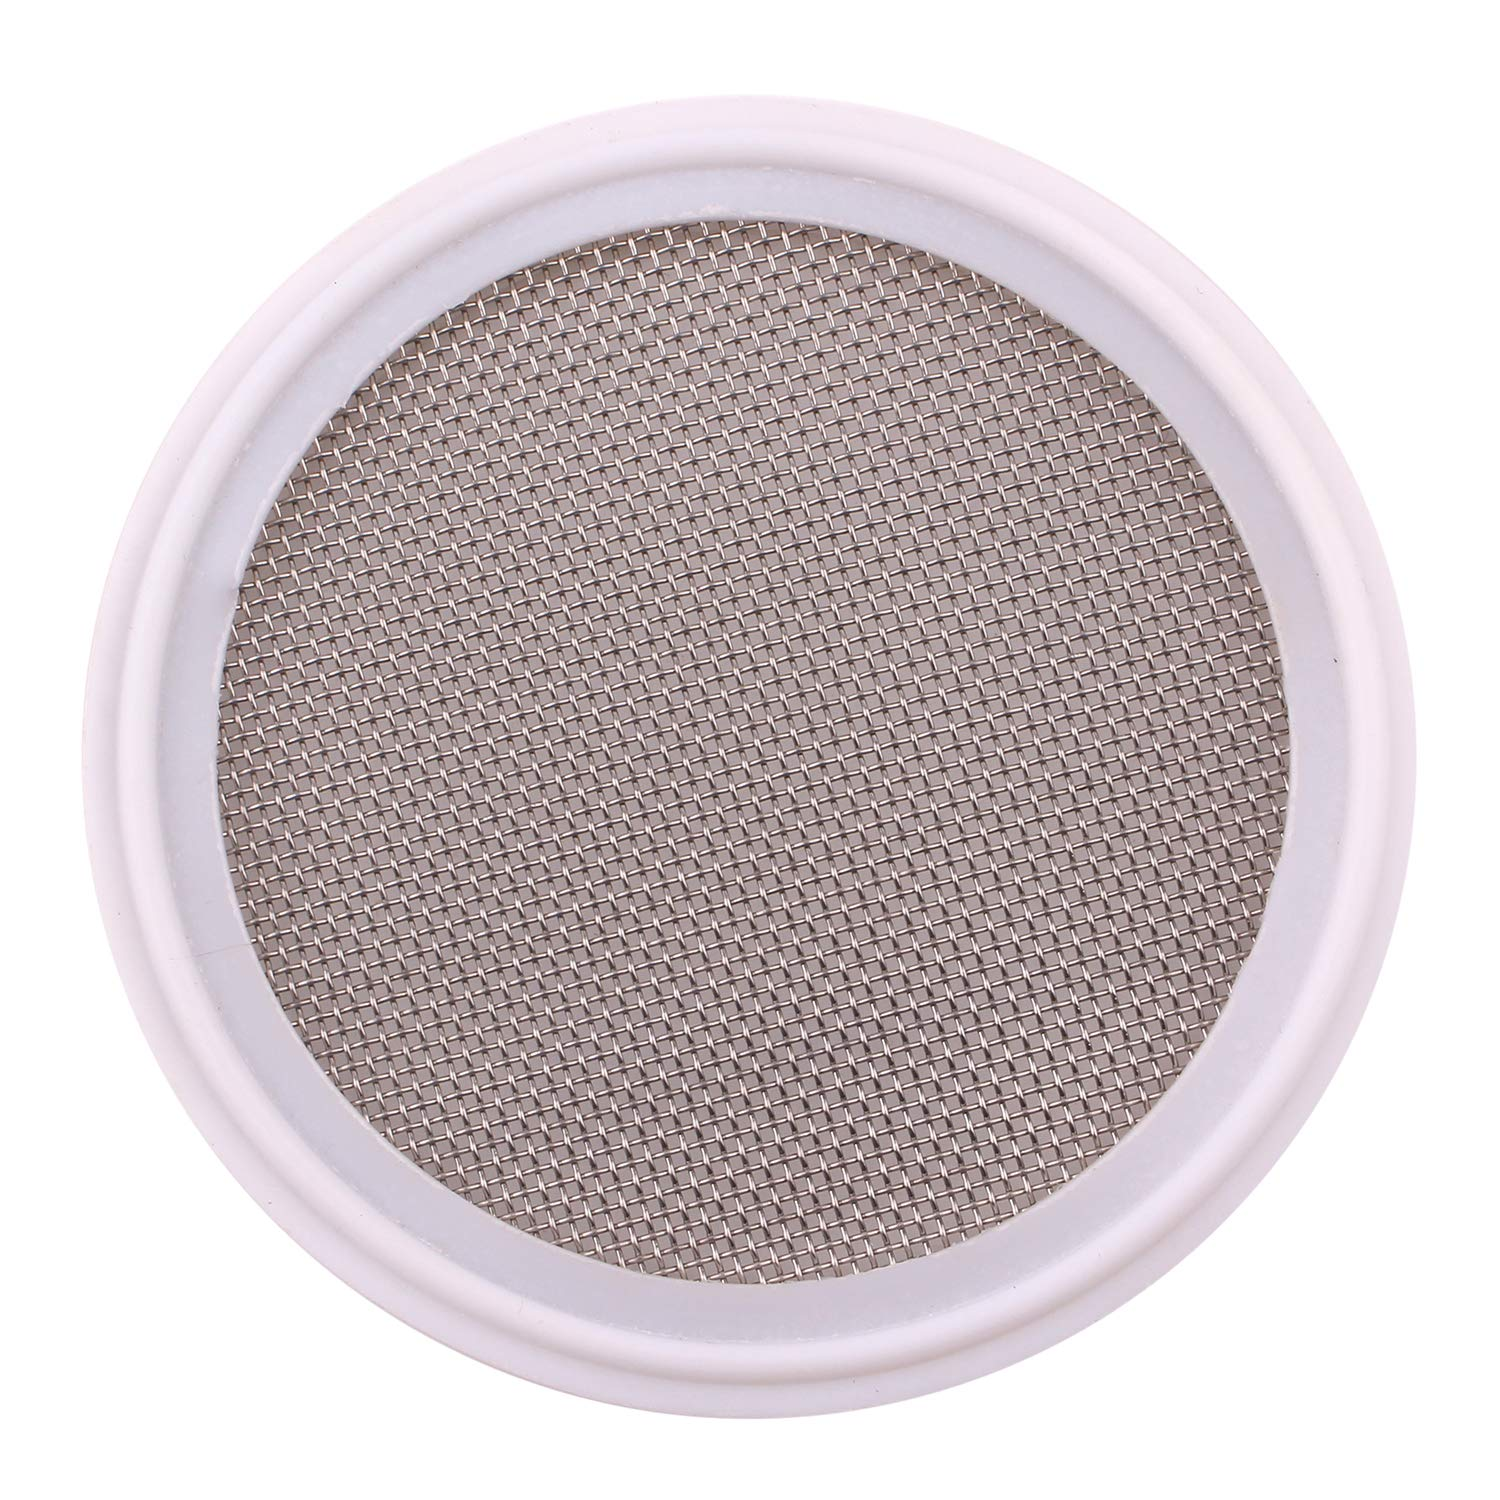 DERNORD 3'' PTFE (Teflon) Sanitary Gasket w/Stainless Screen - Tri Clamp Clover (20 Mesh) by DERNORD